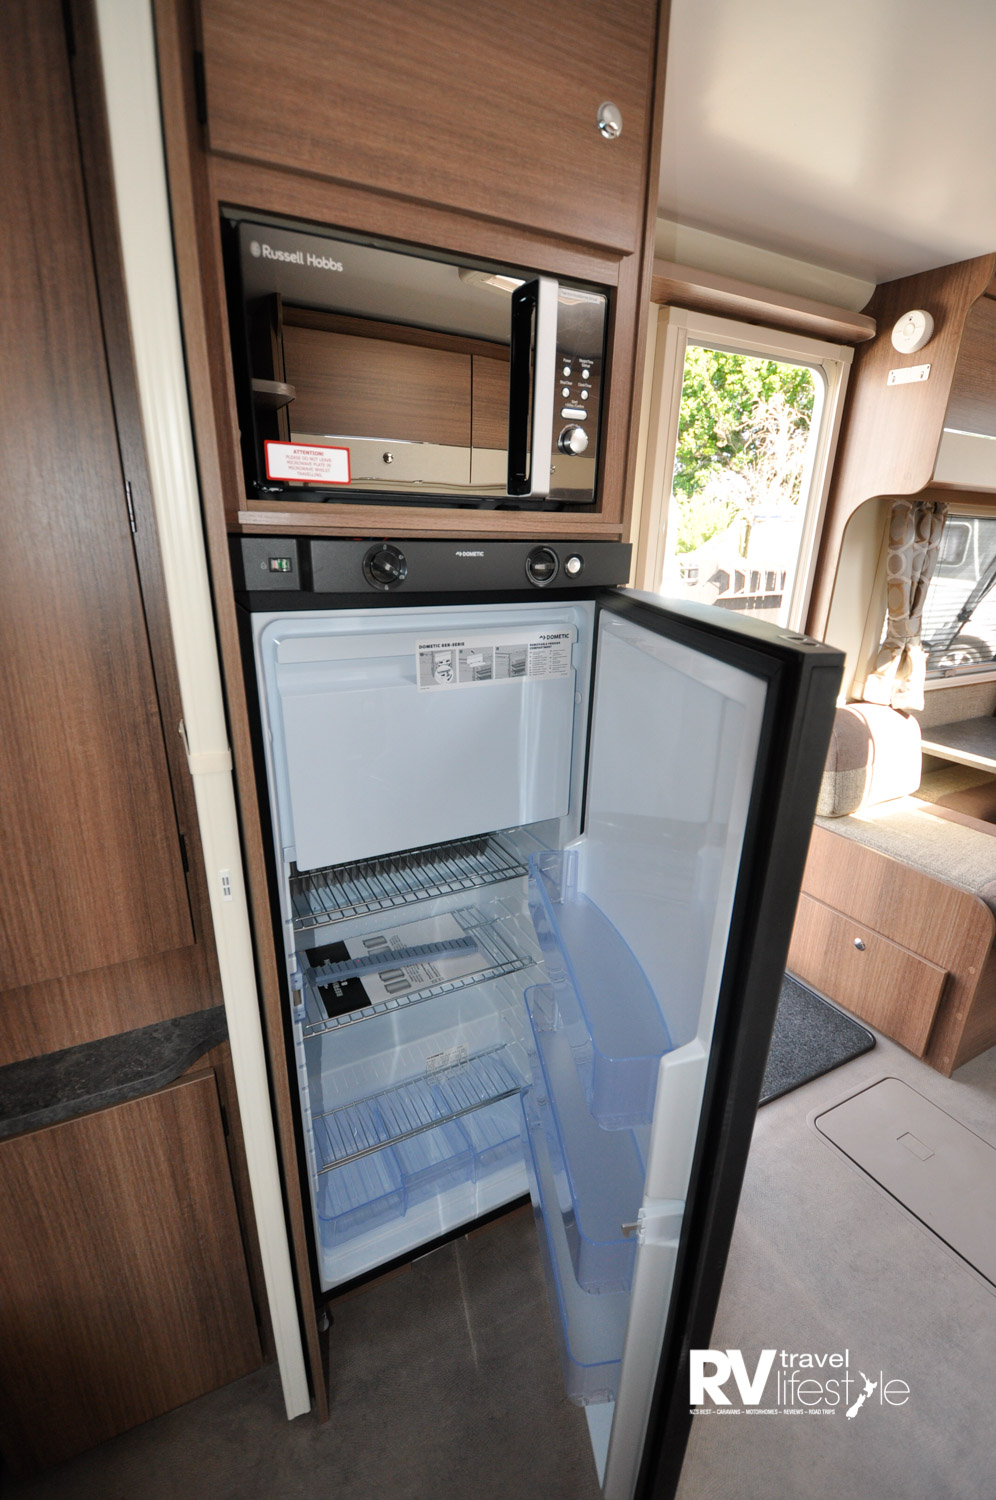 Fridge with freezer unit inside, microwave above this and storage cupboard above that